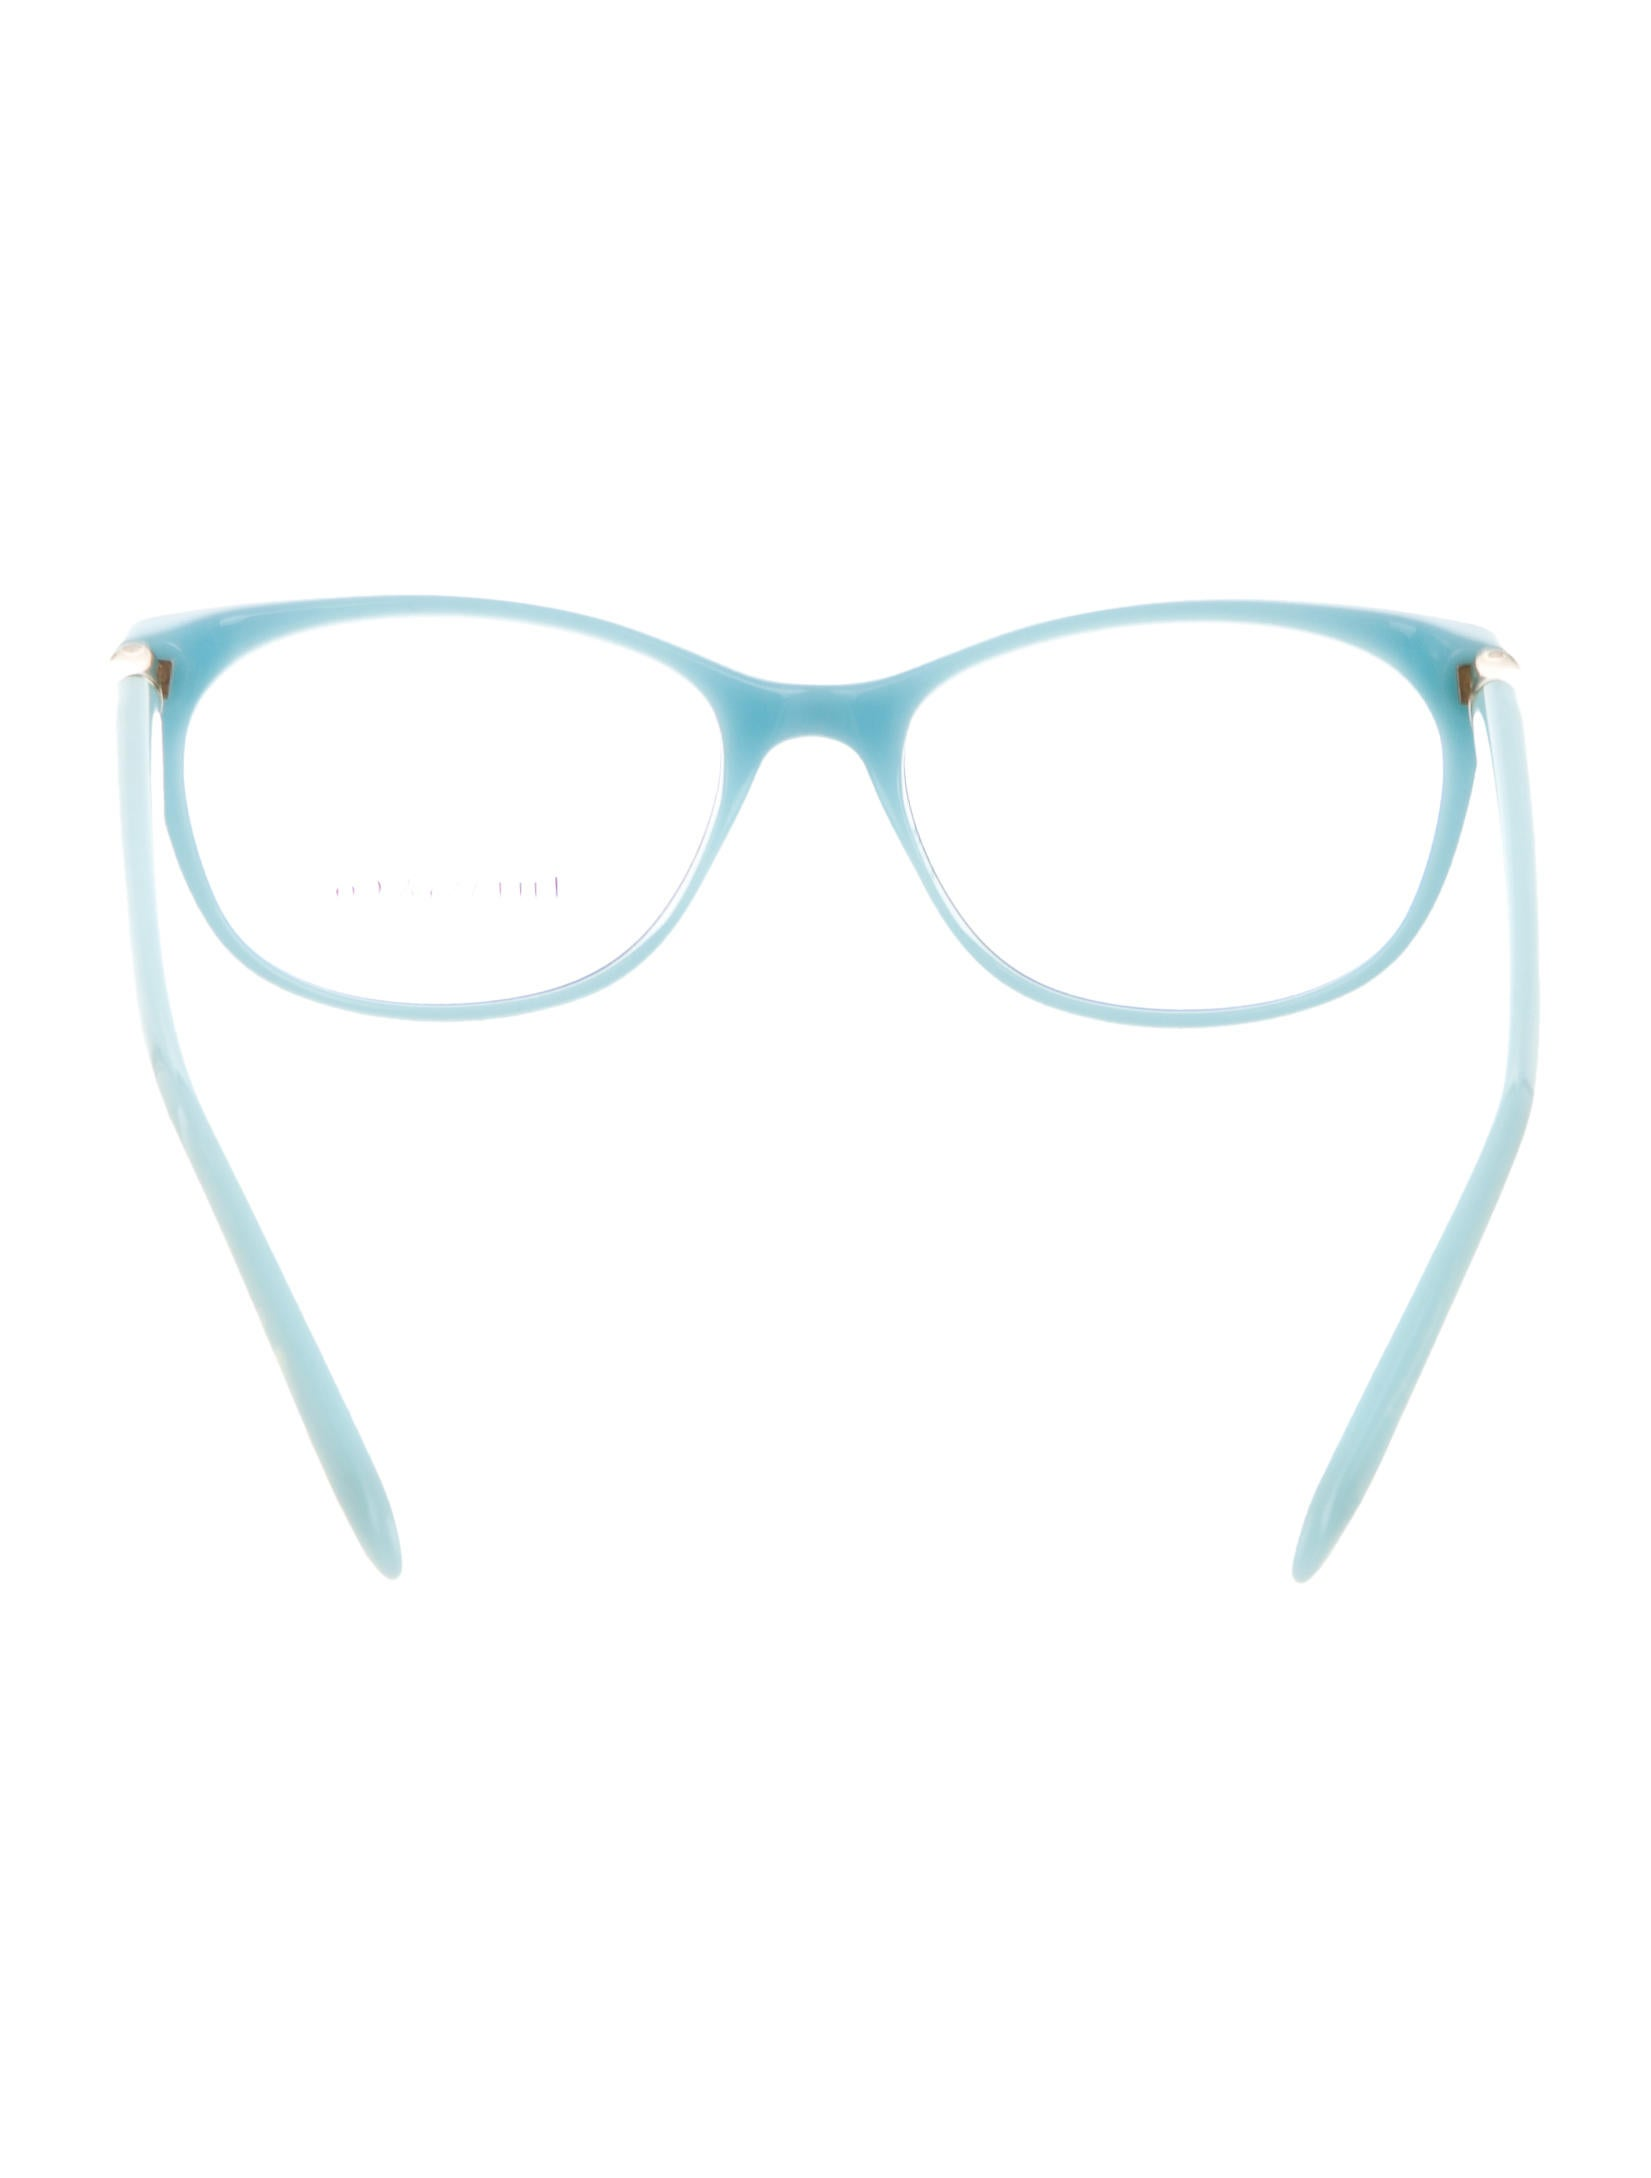 Tiffany & Co. Iridescent Cat-Eye Eyeglasses w/ Tags ...